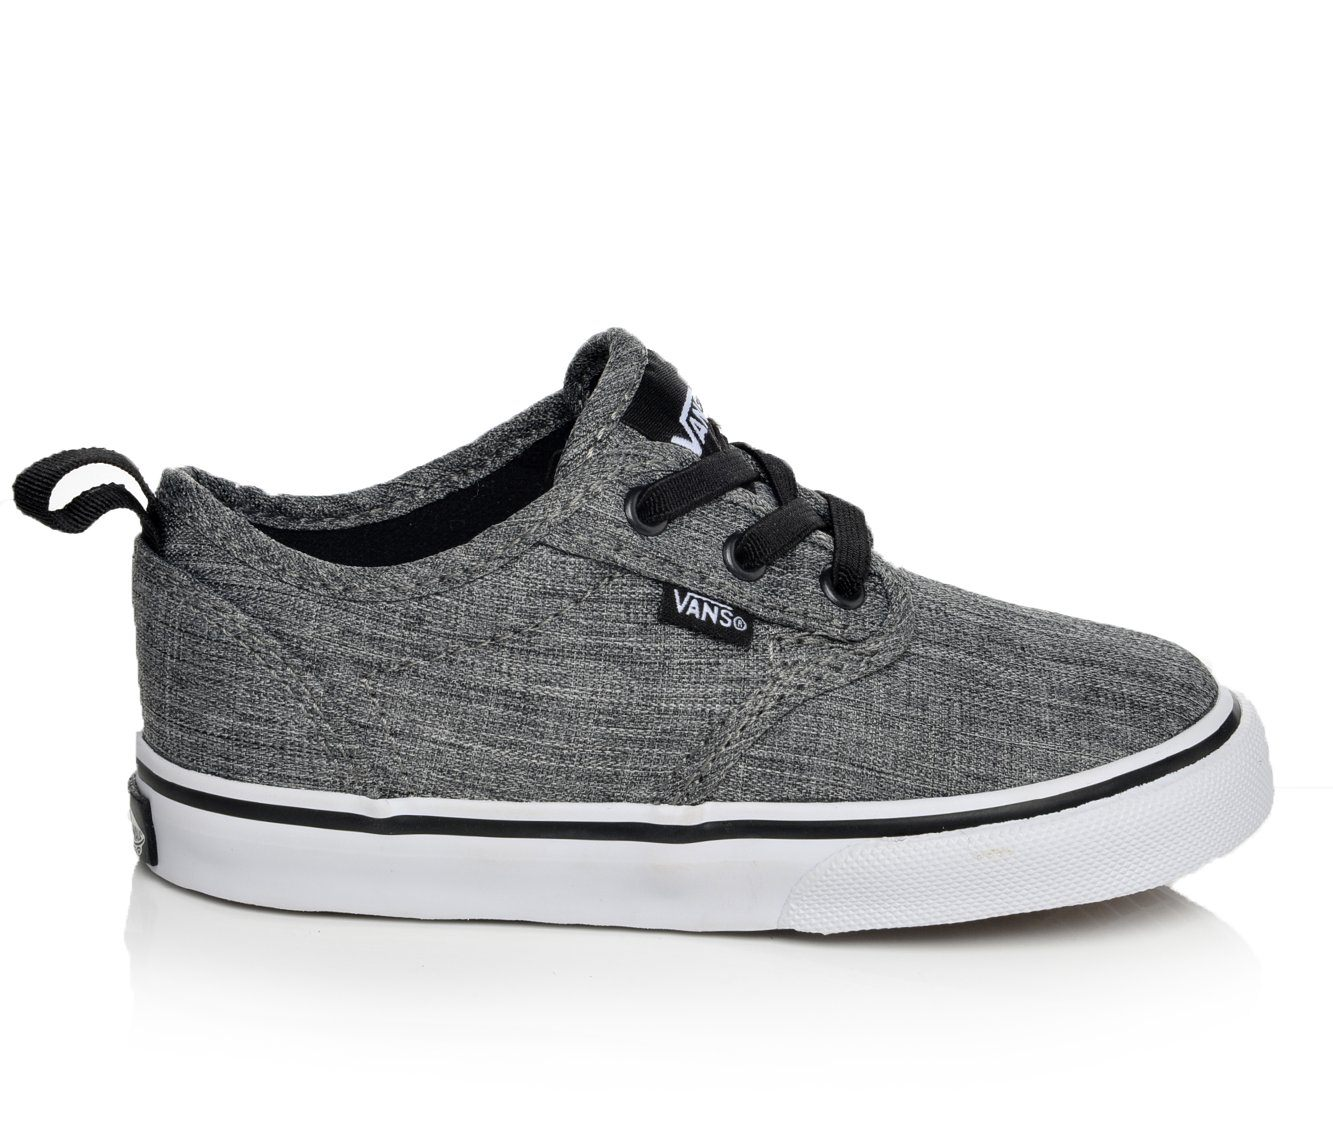 Boys' Vans Atwood Slip-On Sneakers (Grey)